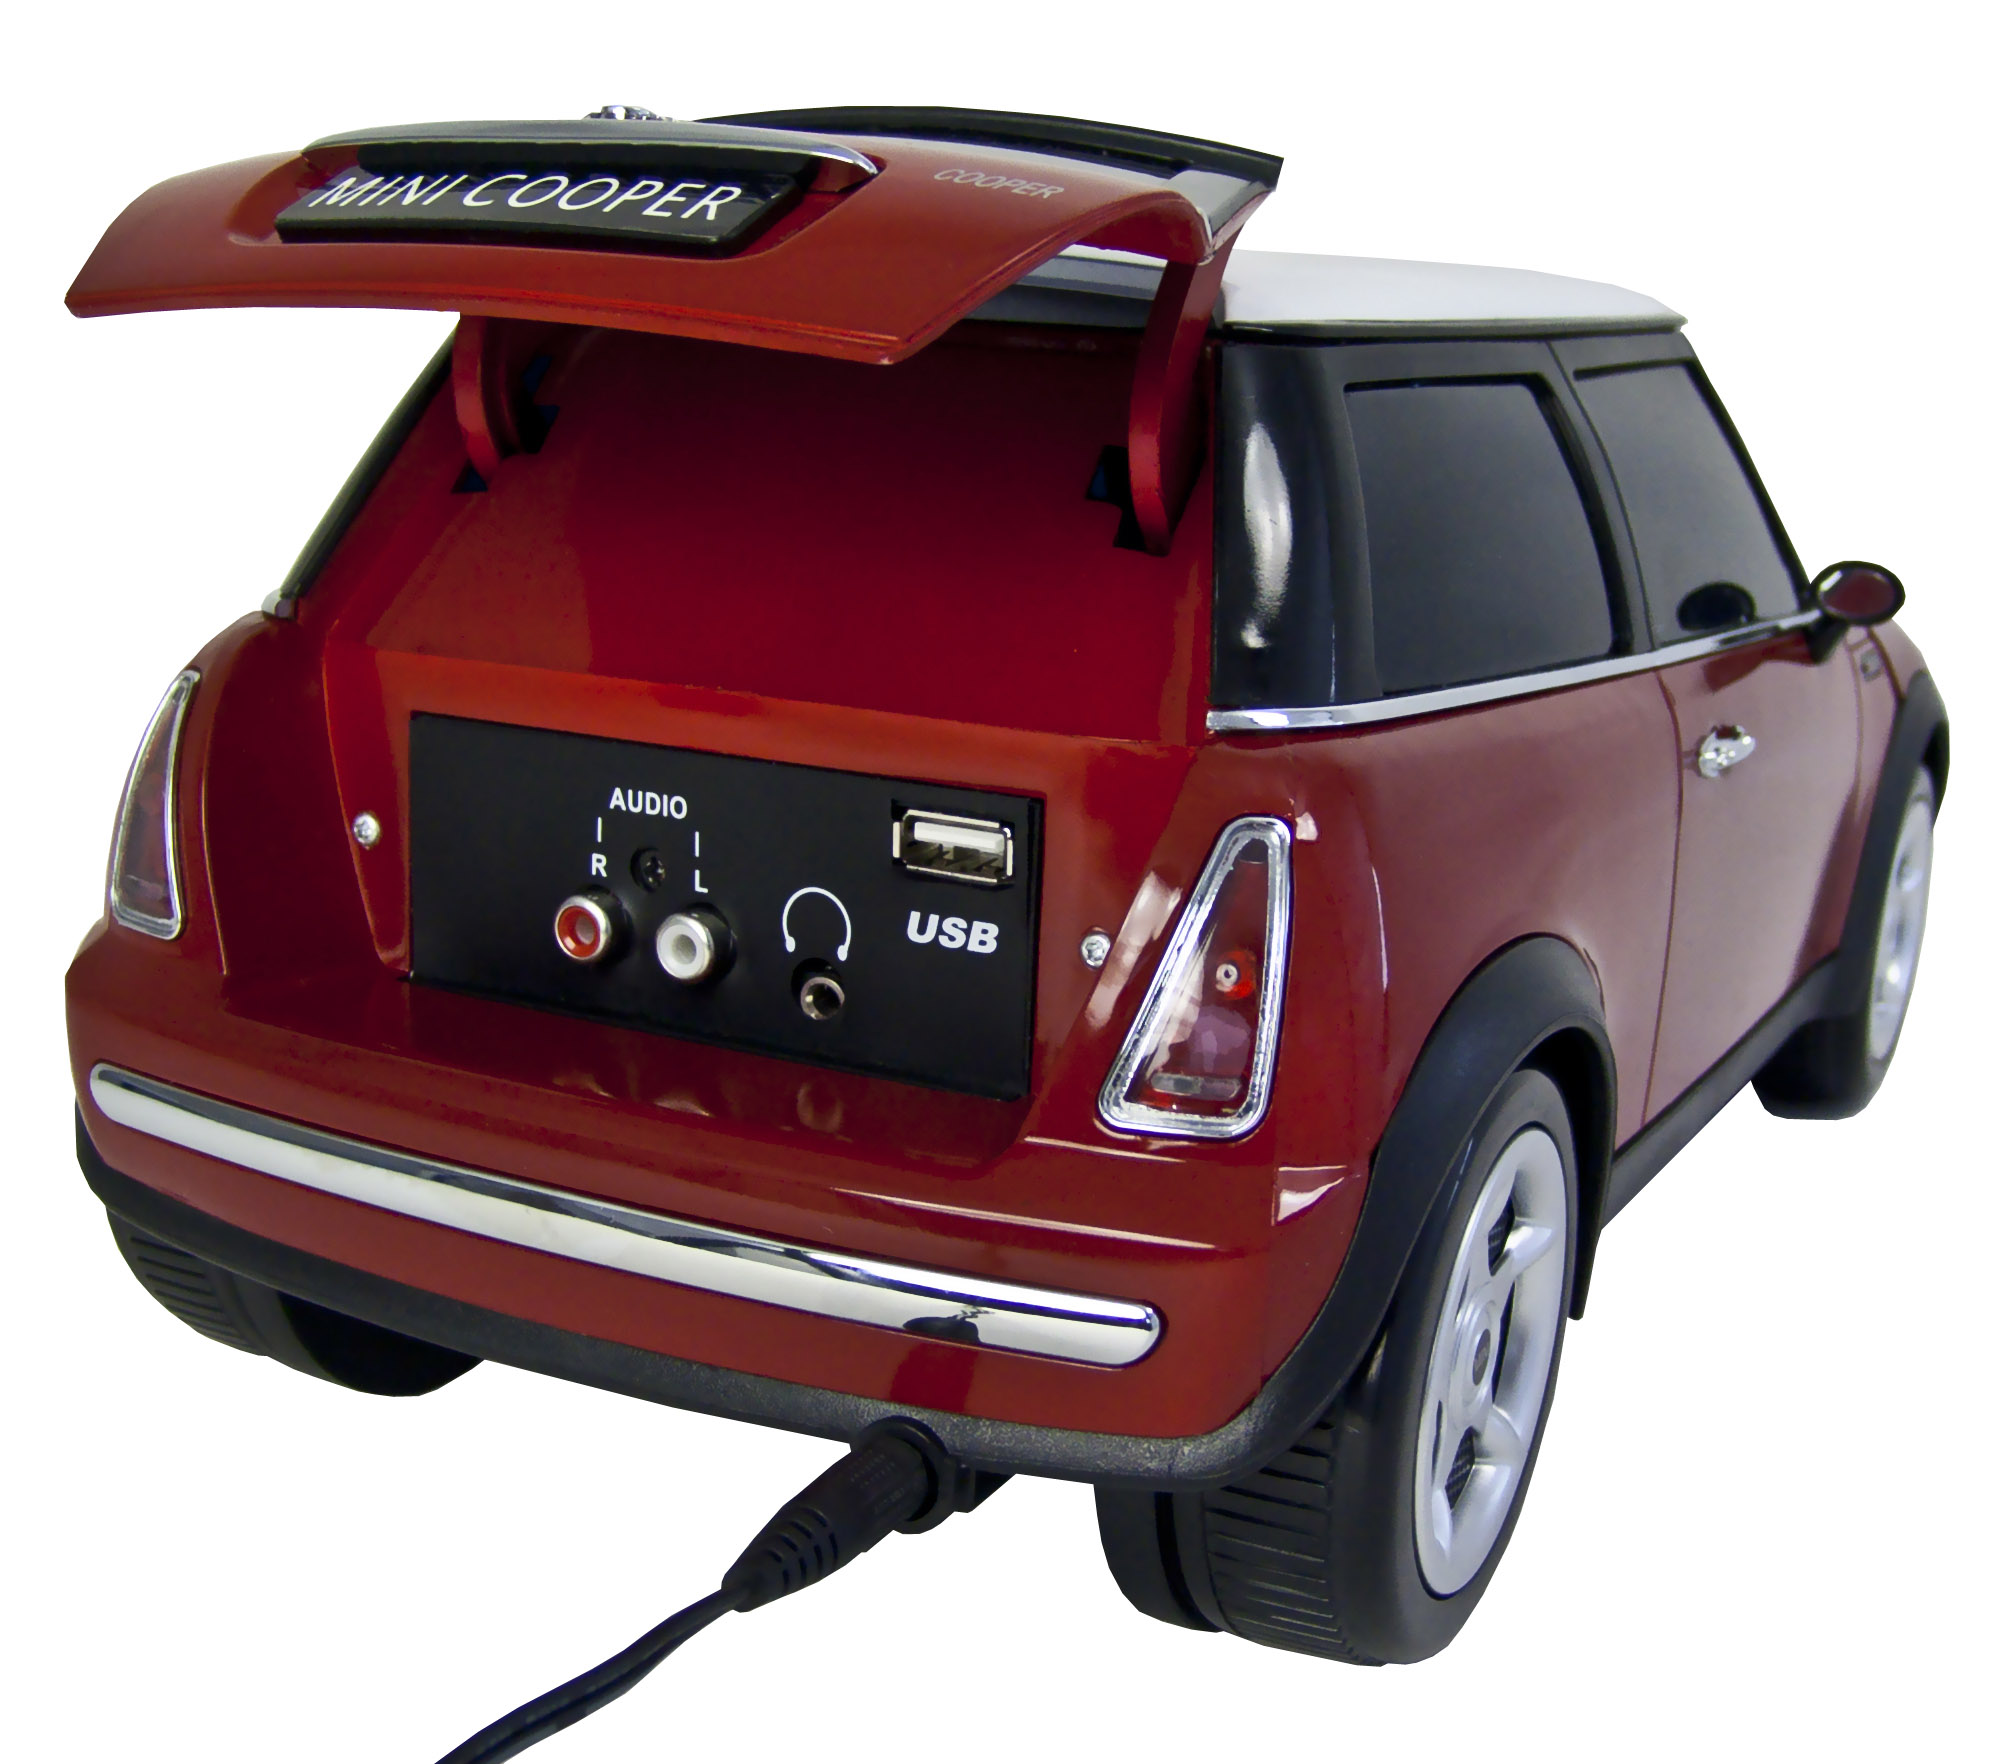 karcher mini cooper cd radio cd player fm radio usb. Black Bedroom Furniture Sets. Home Design Ideas